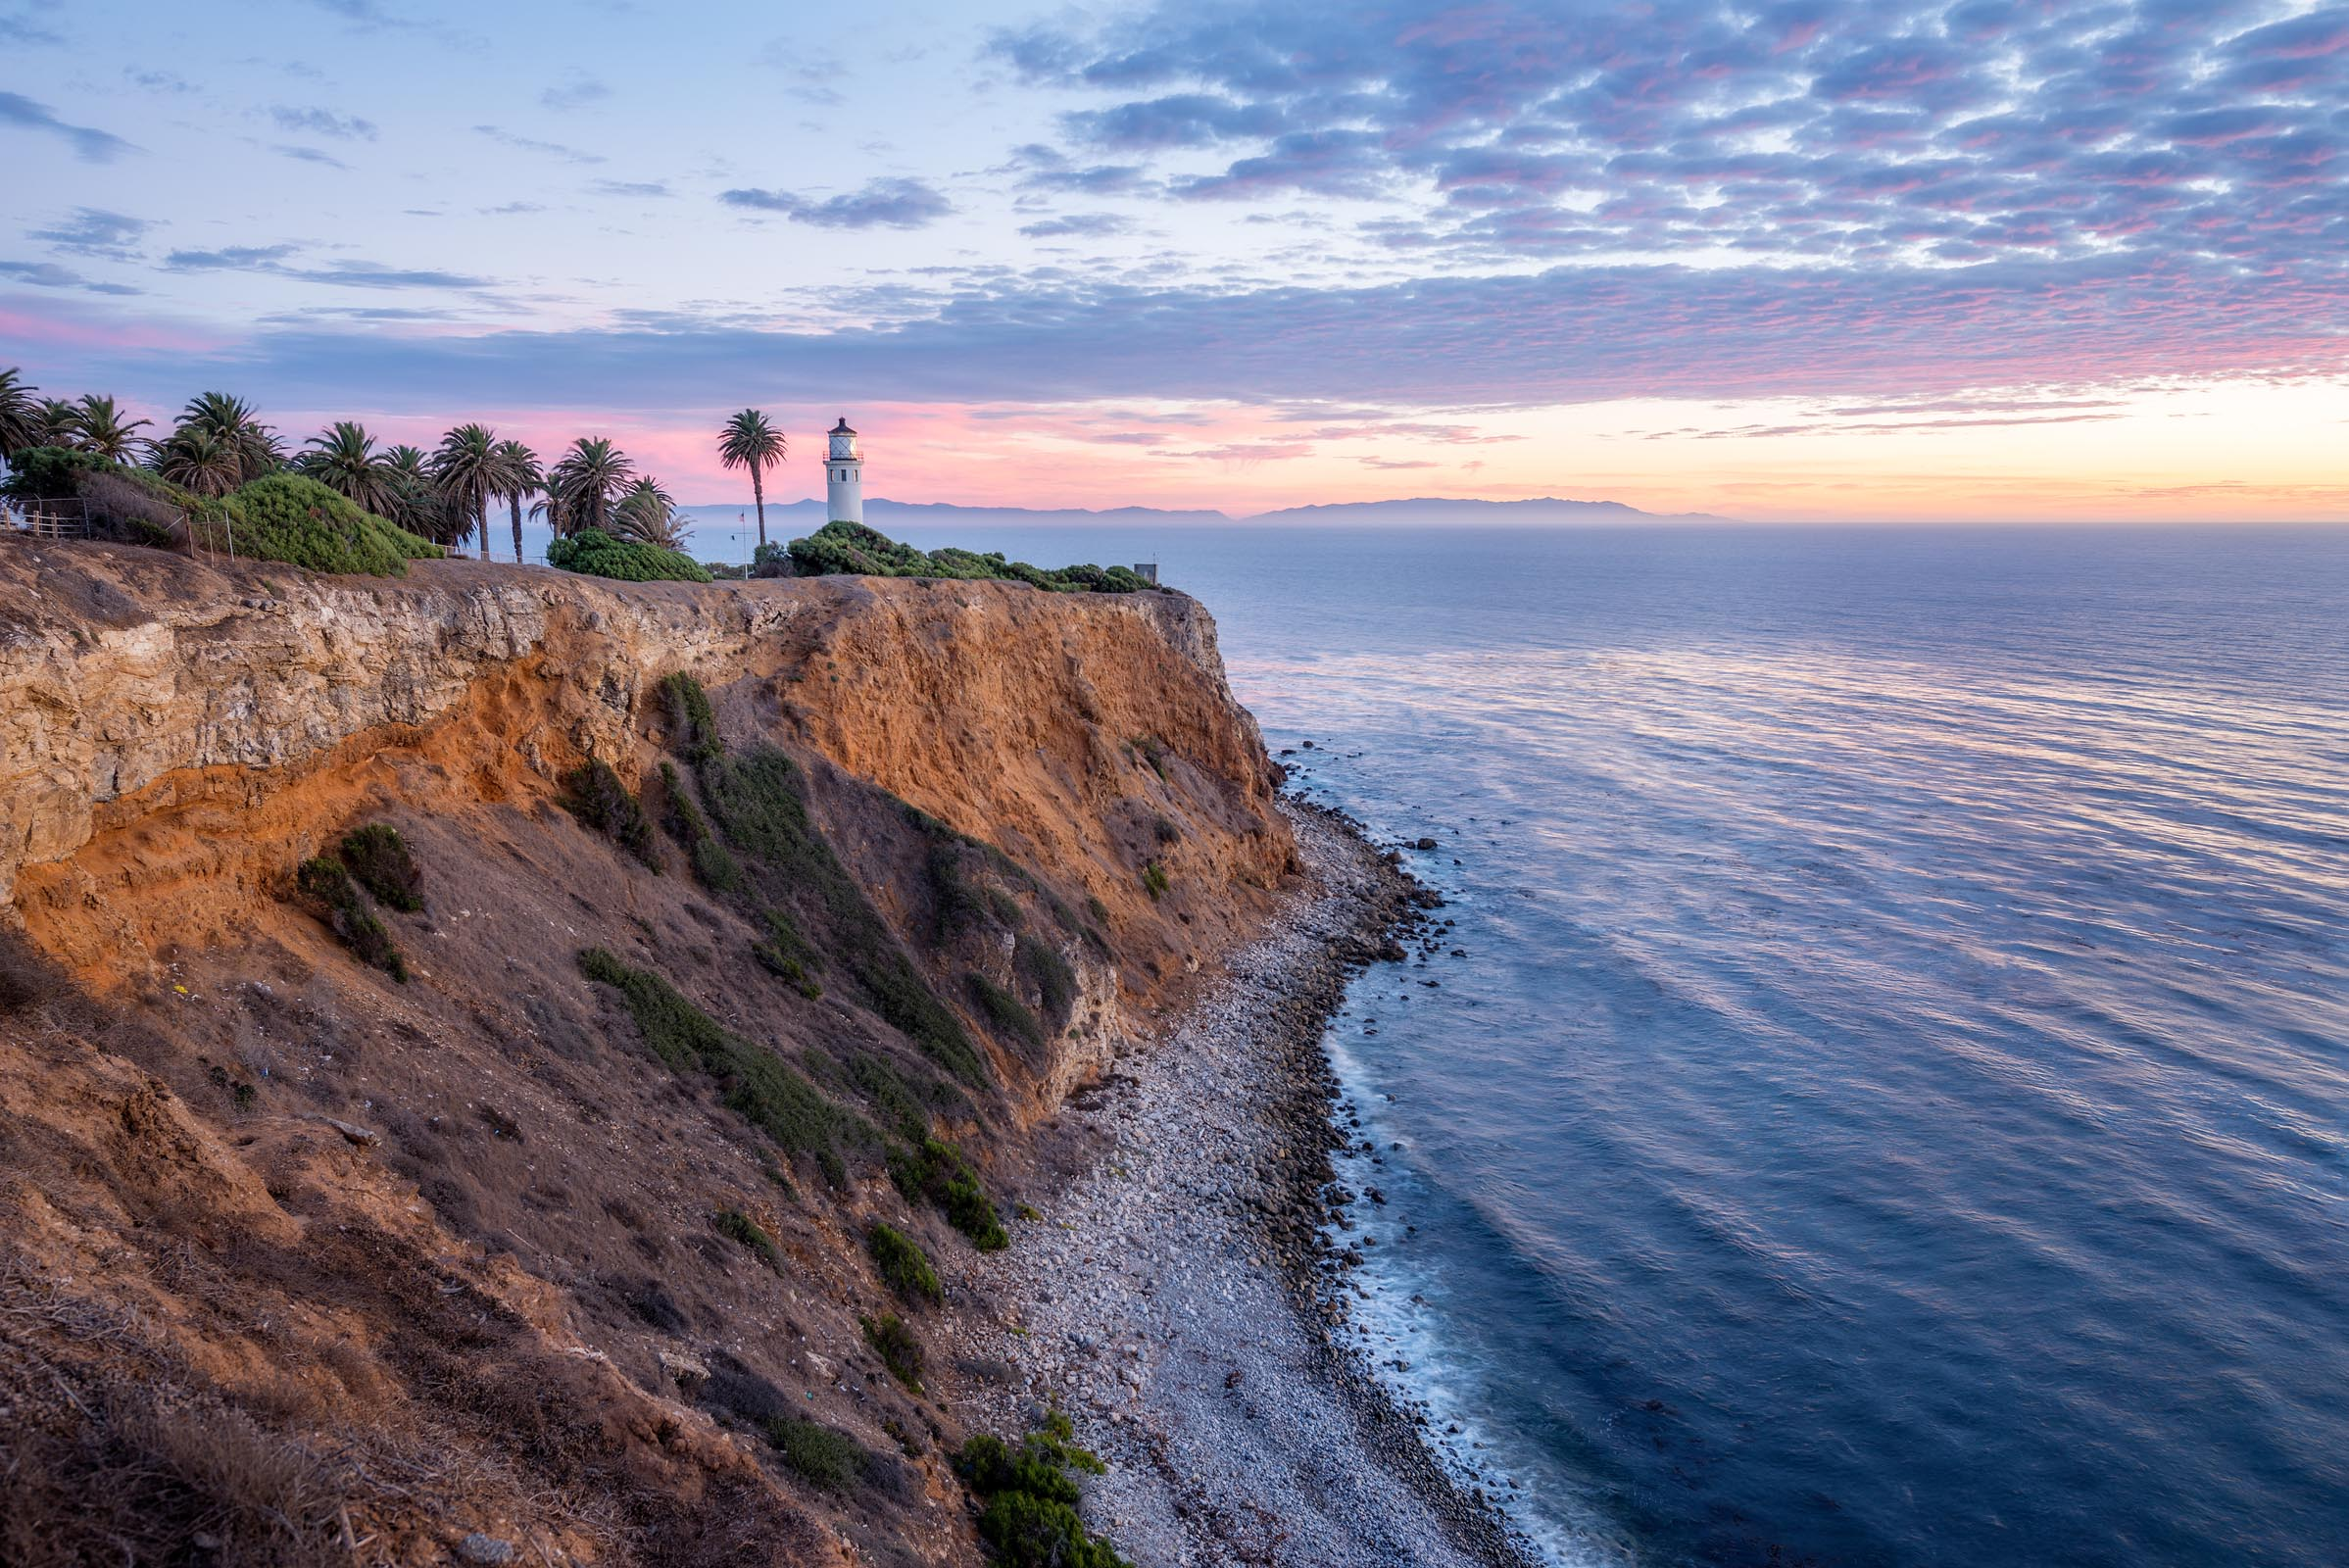 Photograph of Point Vicente Lighthouse in Palos Verdes, California by Brent Goldman Photography